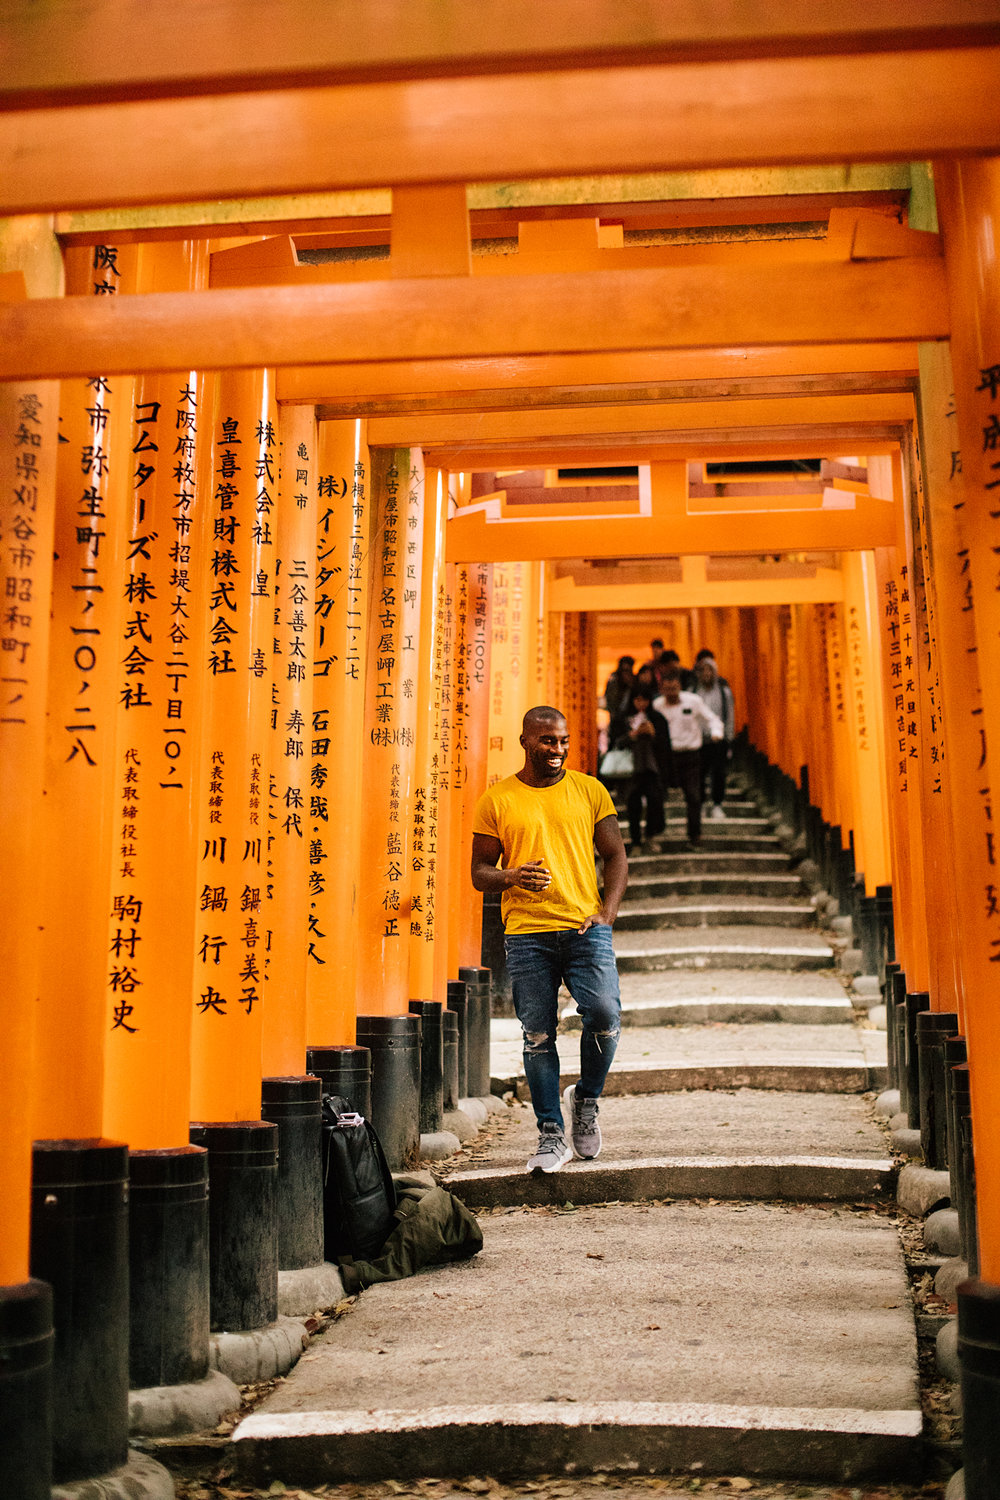 Fushimi Inari where we walked through thousands of torii gates.